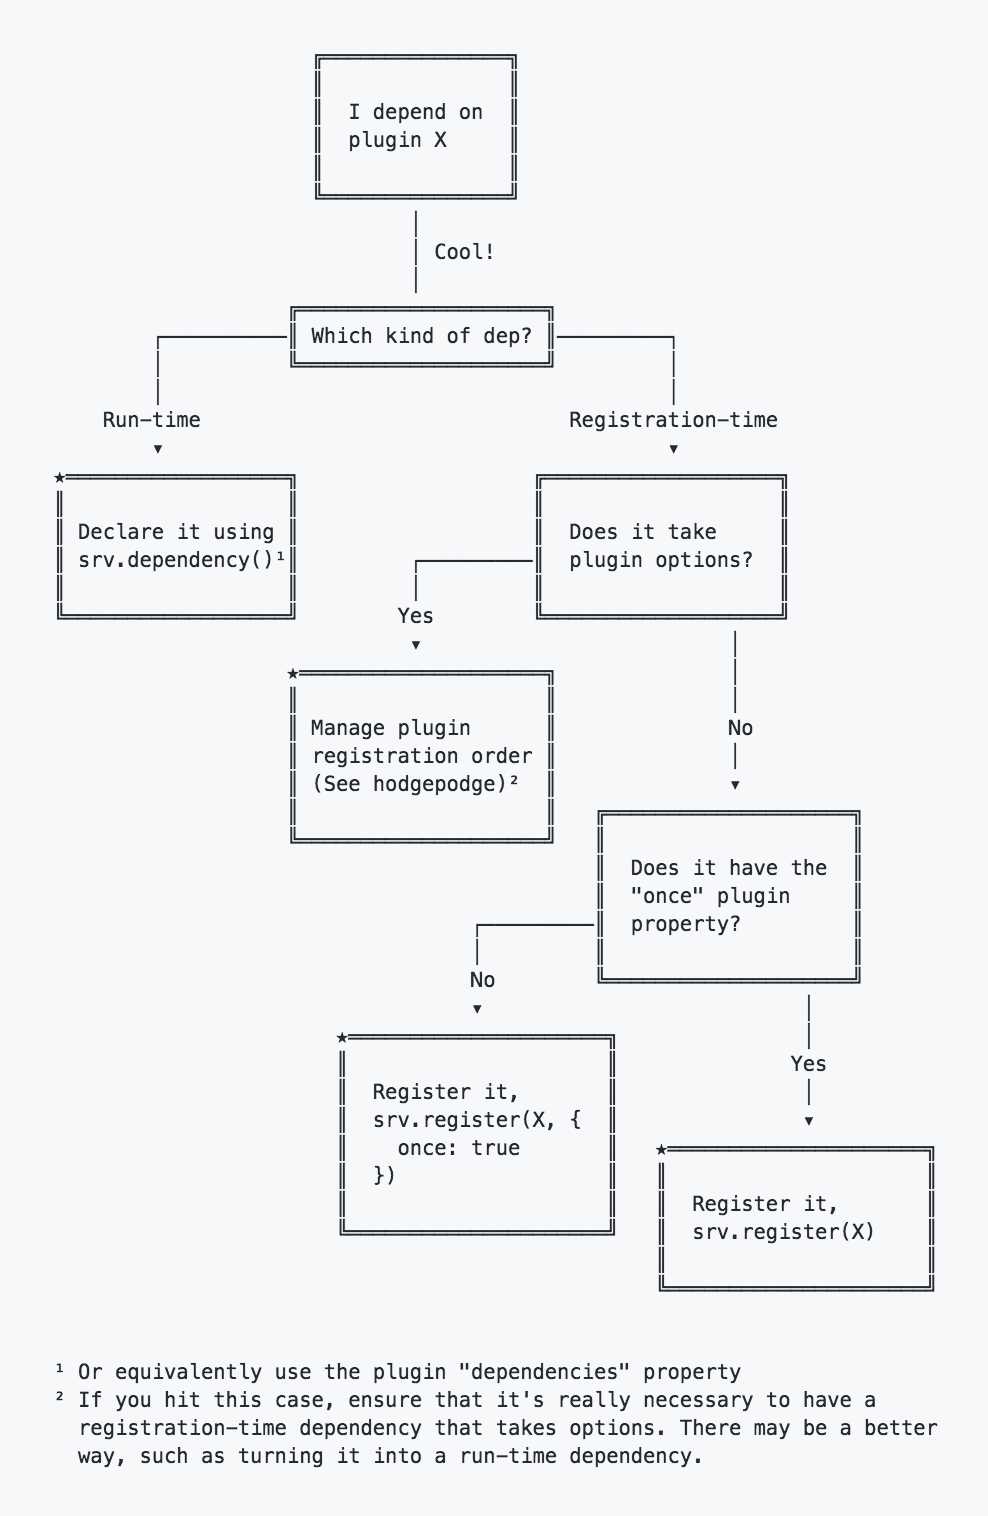 Handling plugin dependencies decision tree